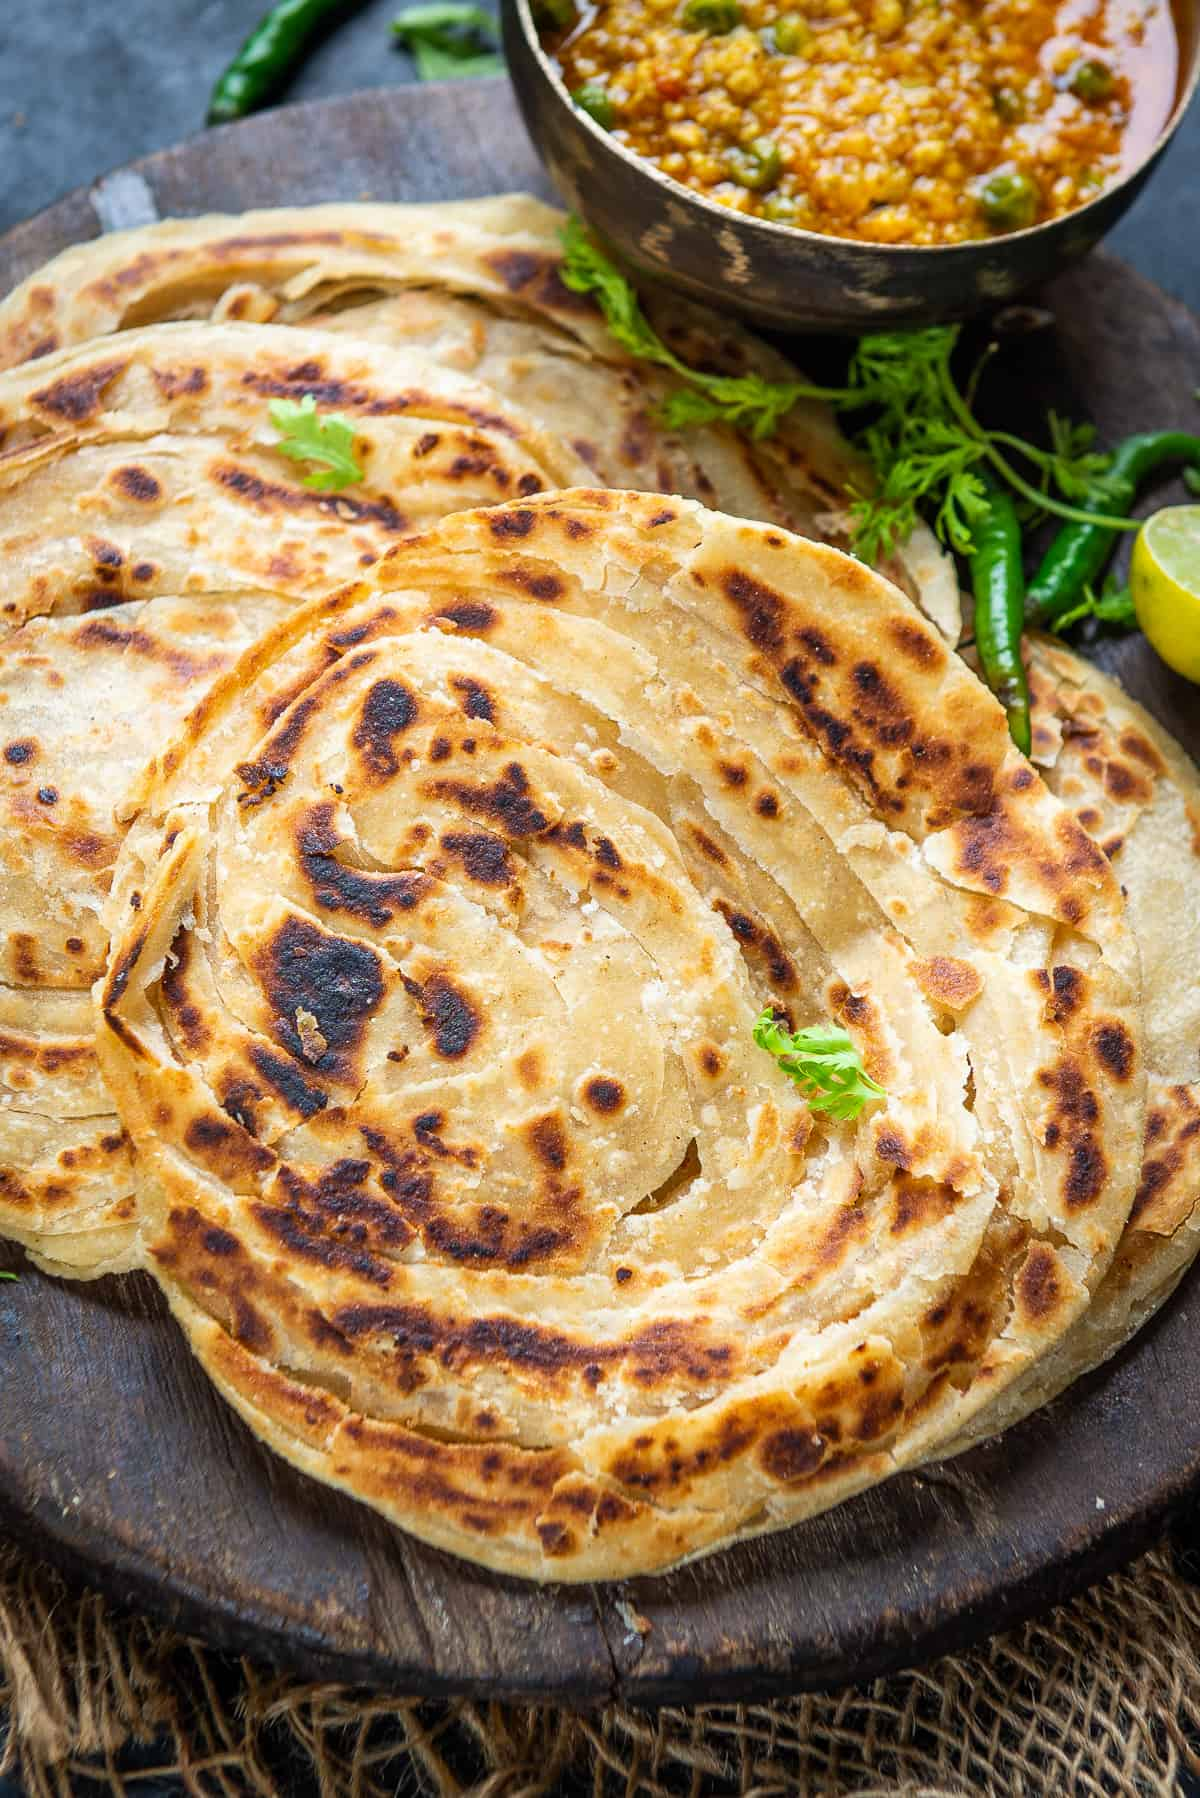 lachha Paratha stacked on a plate.